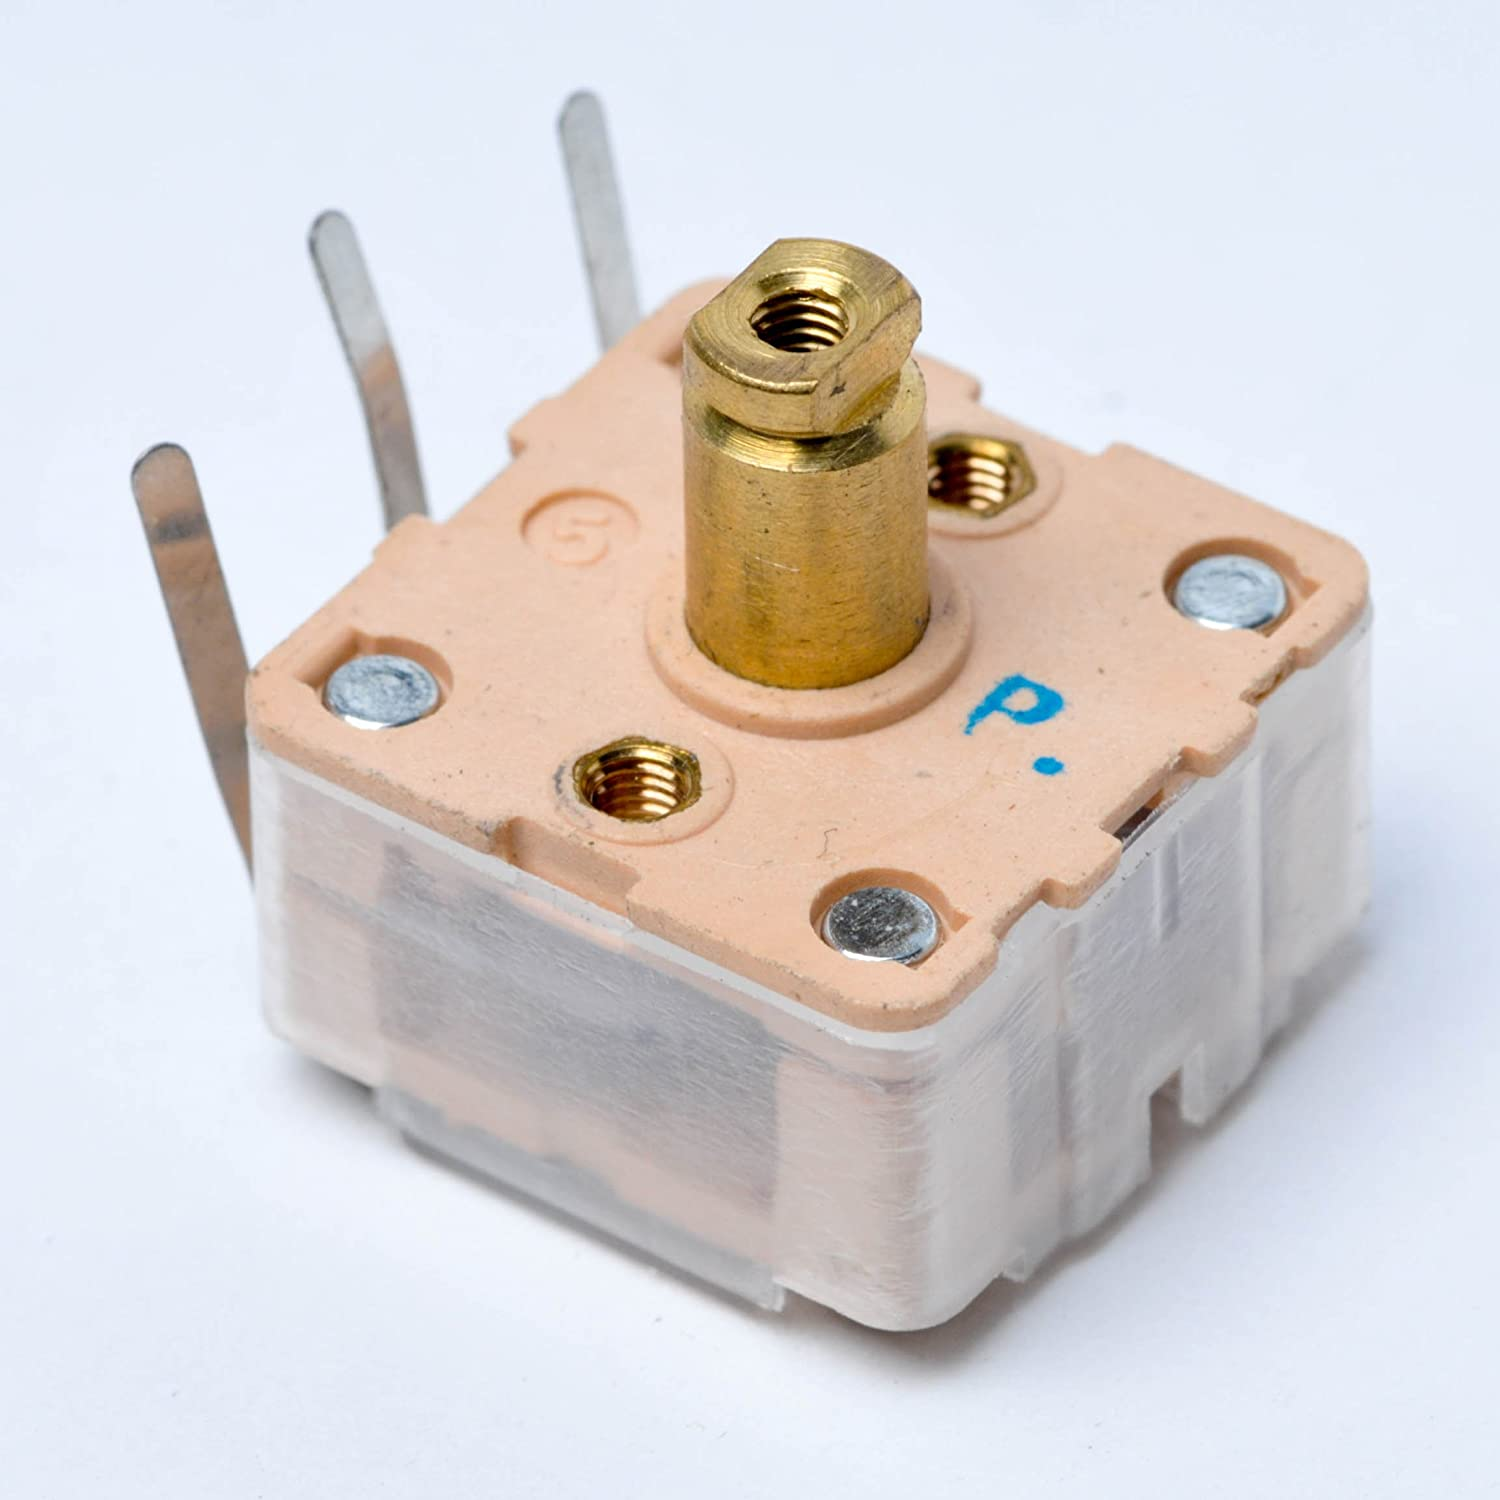 Miniature AM Tuning Variable Capacitor